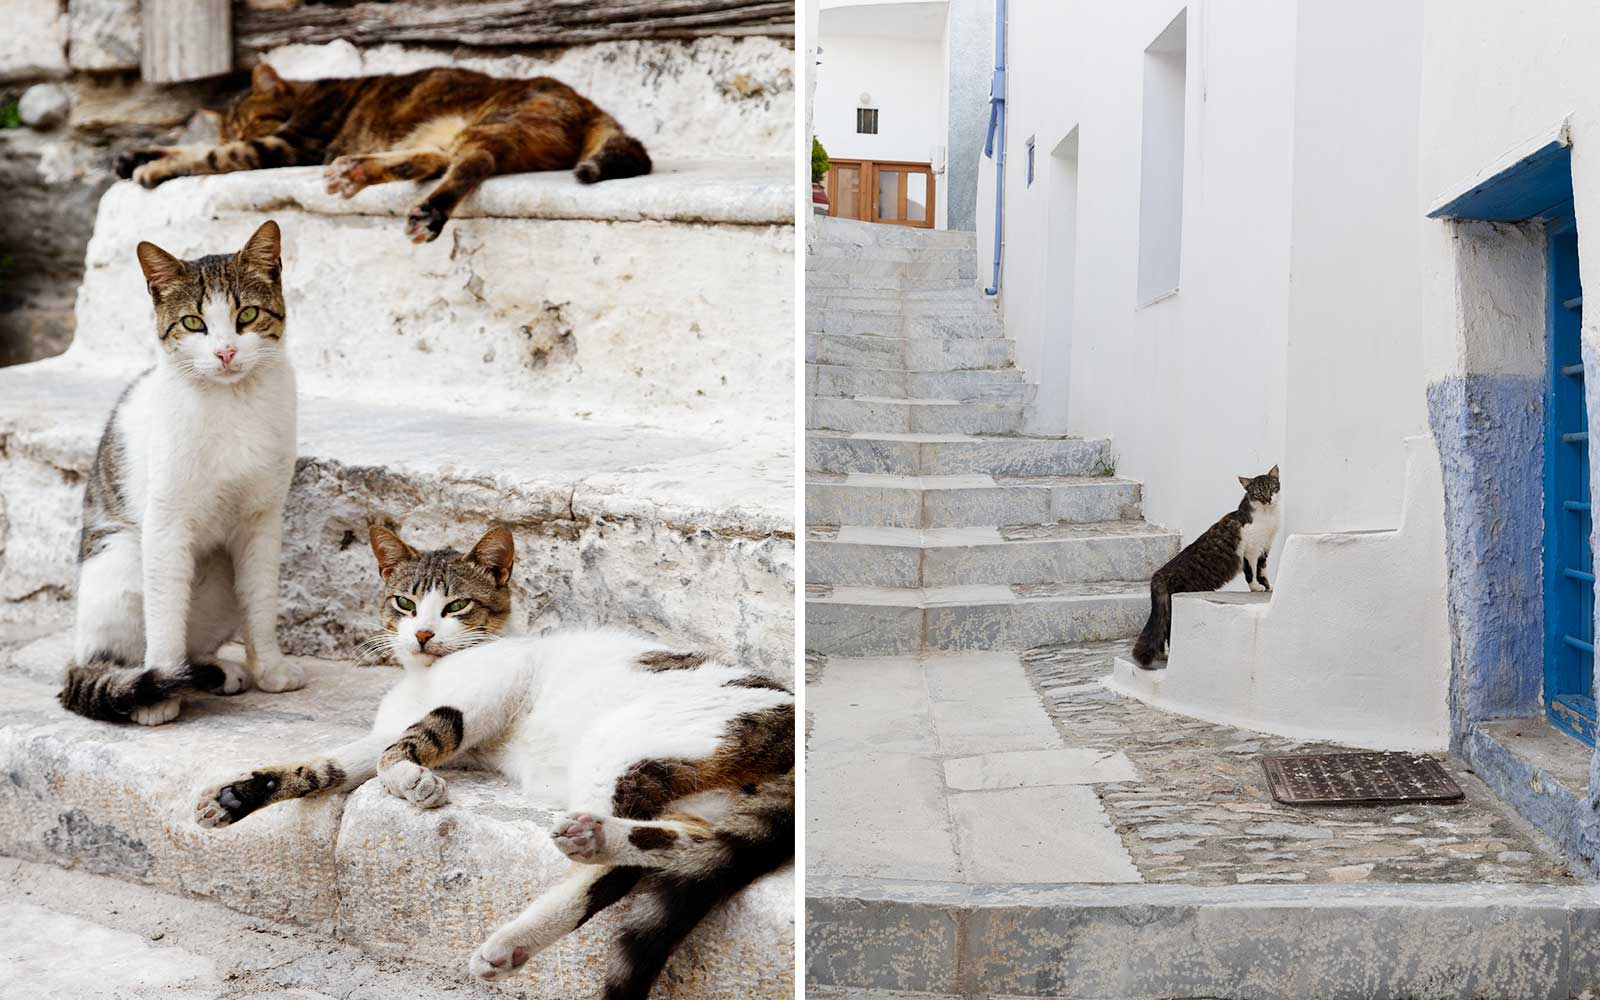 Cats on the island of Syros in Greece